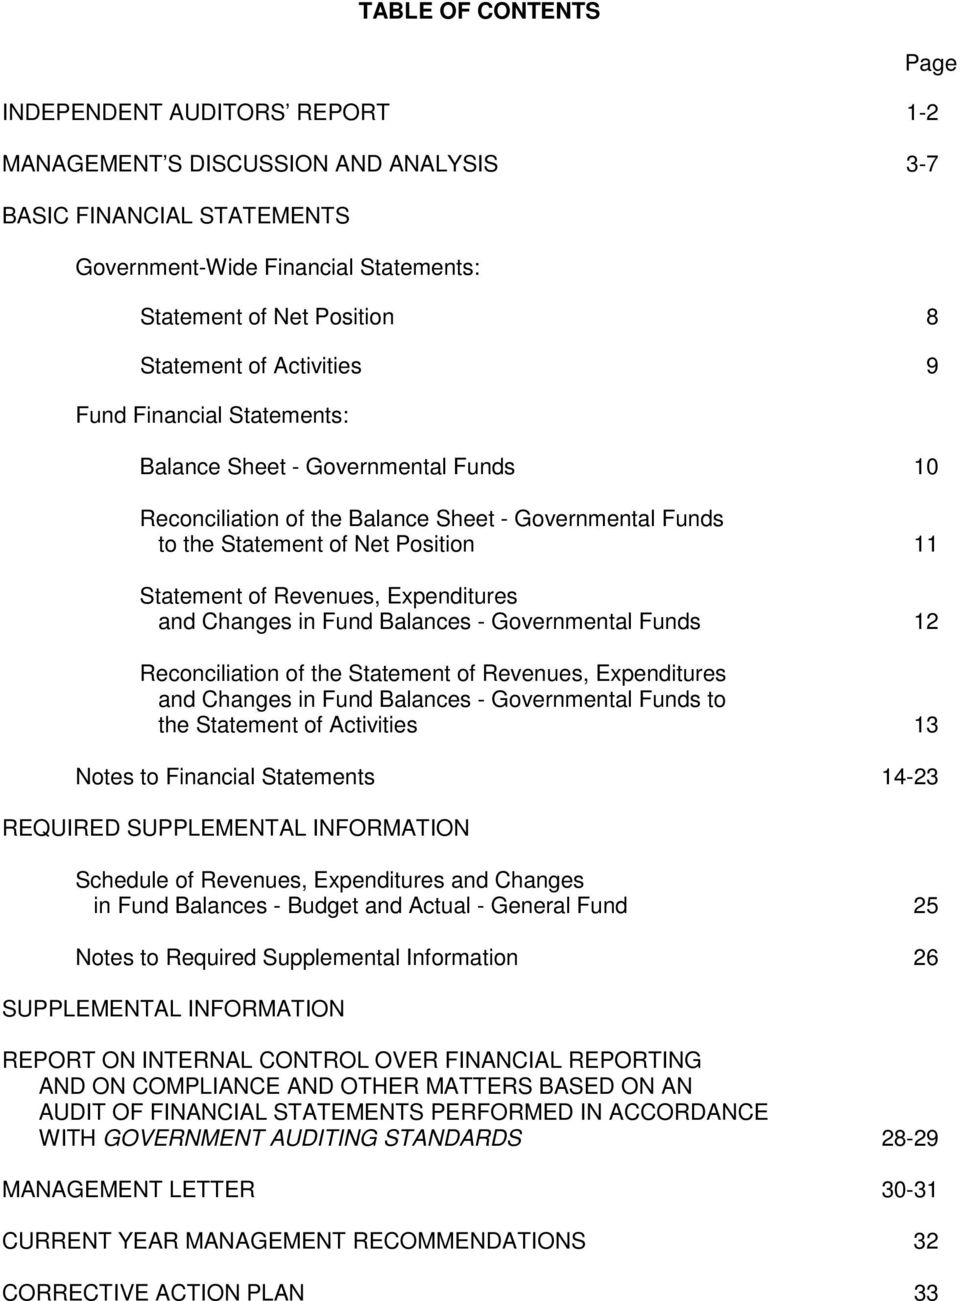 Expenditures and Changes in Fund Balances - Governmental Funds 12 Reconciliation of the Statement of Revenues, Expenditures and Changes in Fund Balances - Governmental Funds to the Statement of